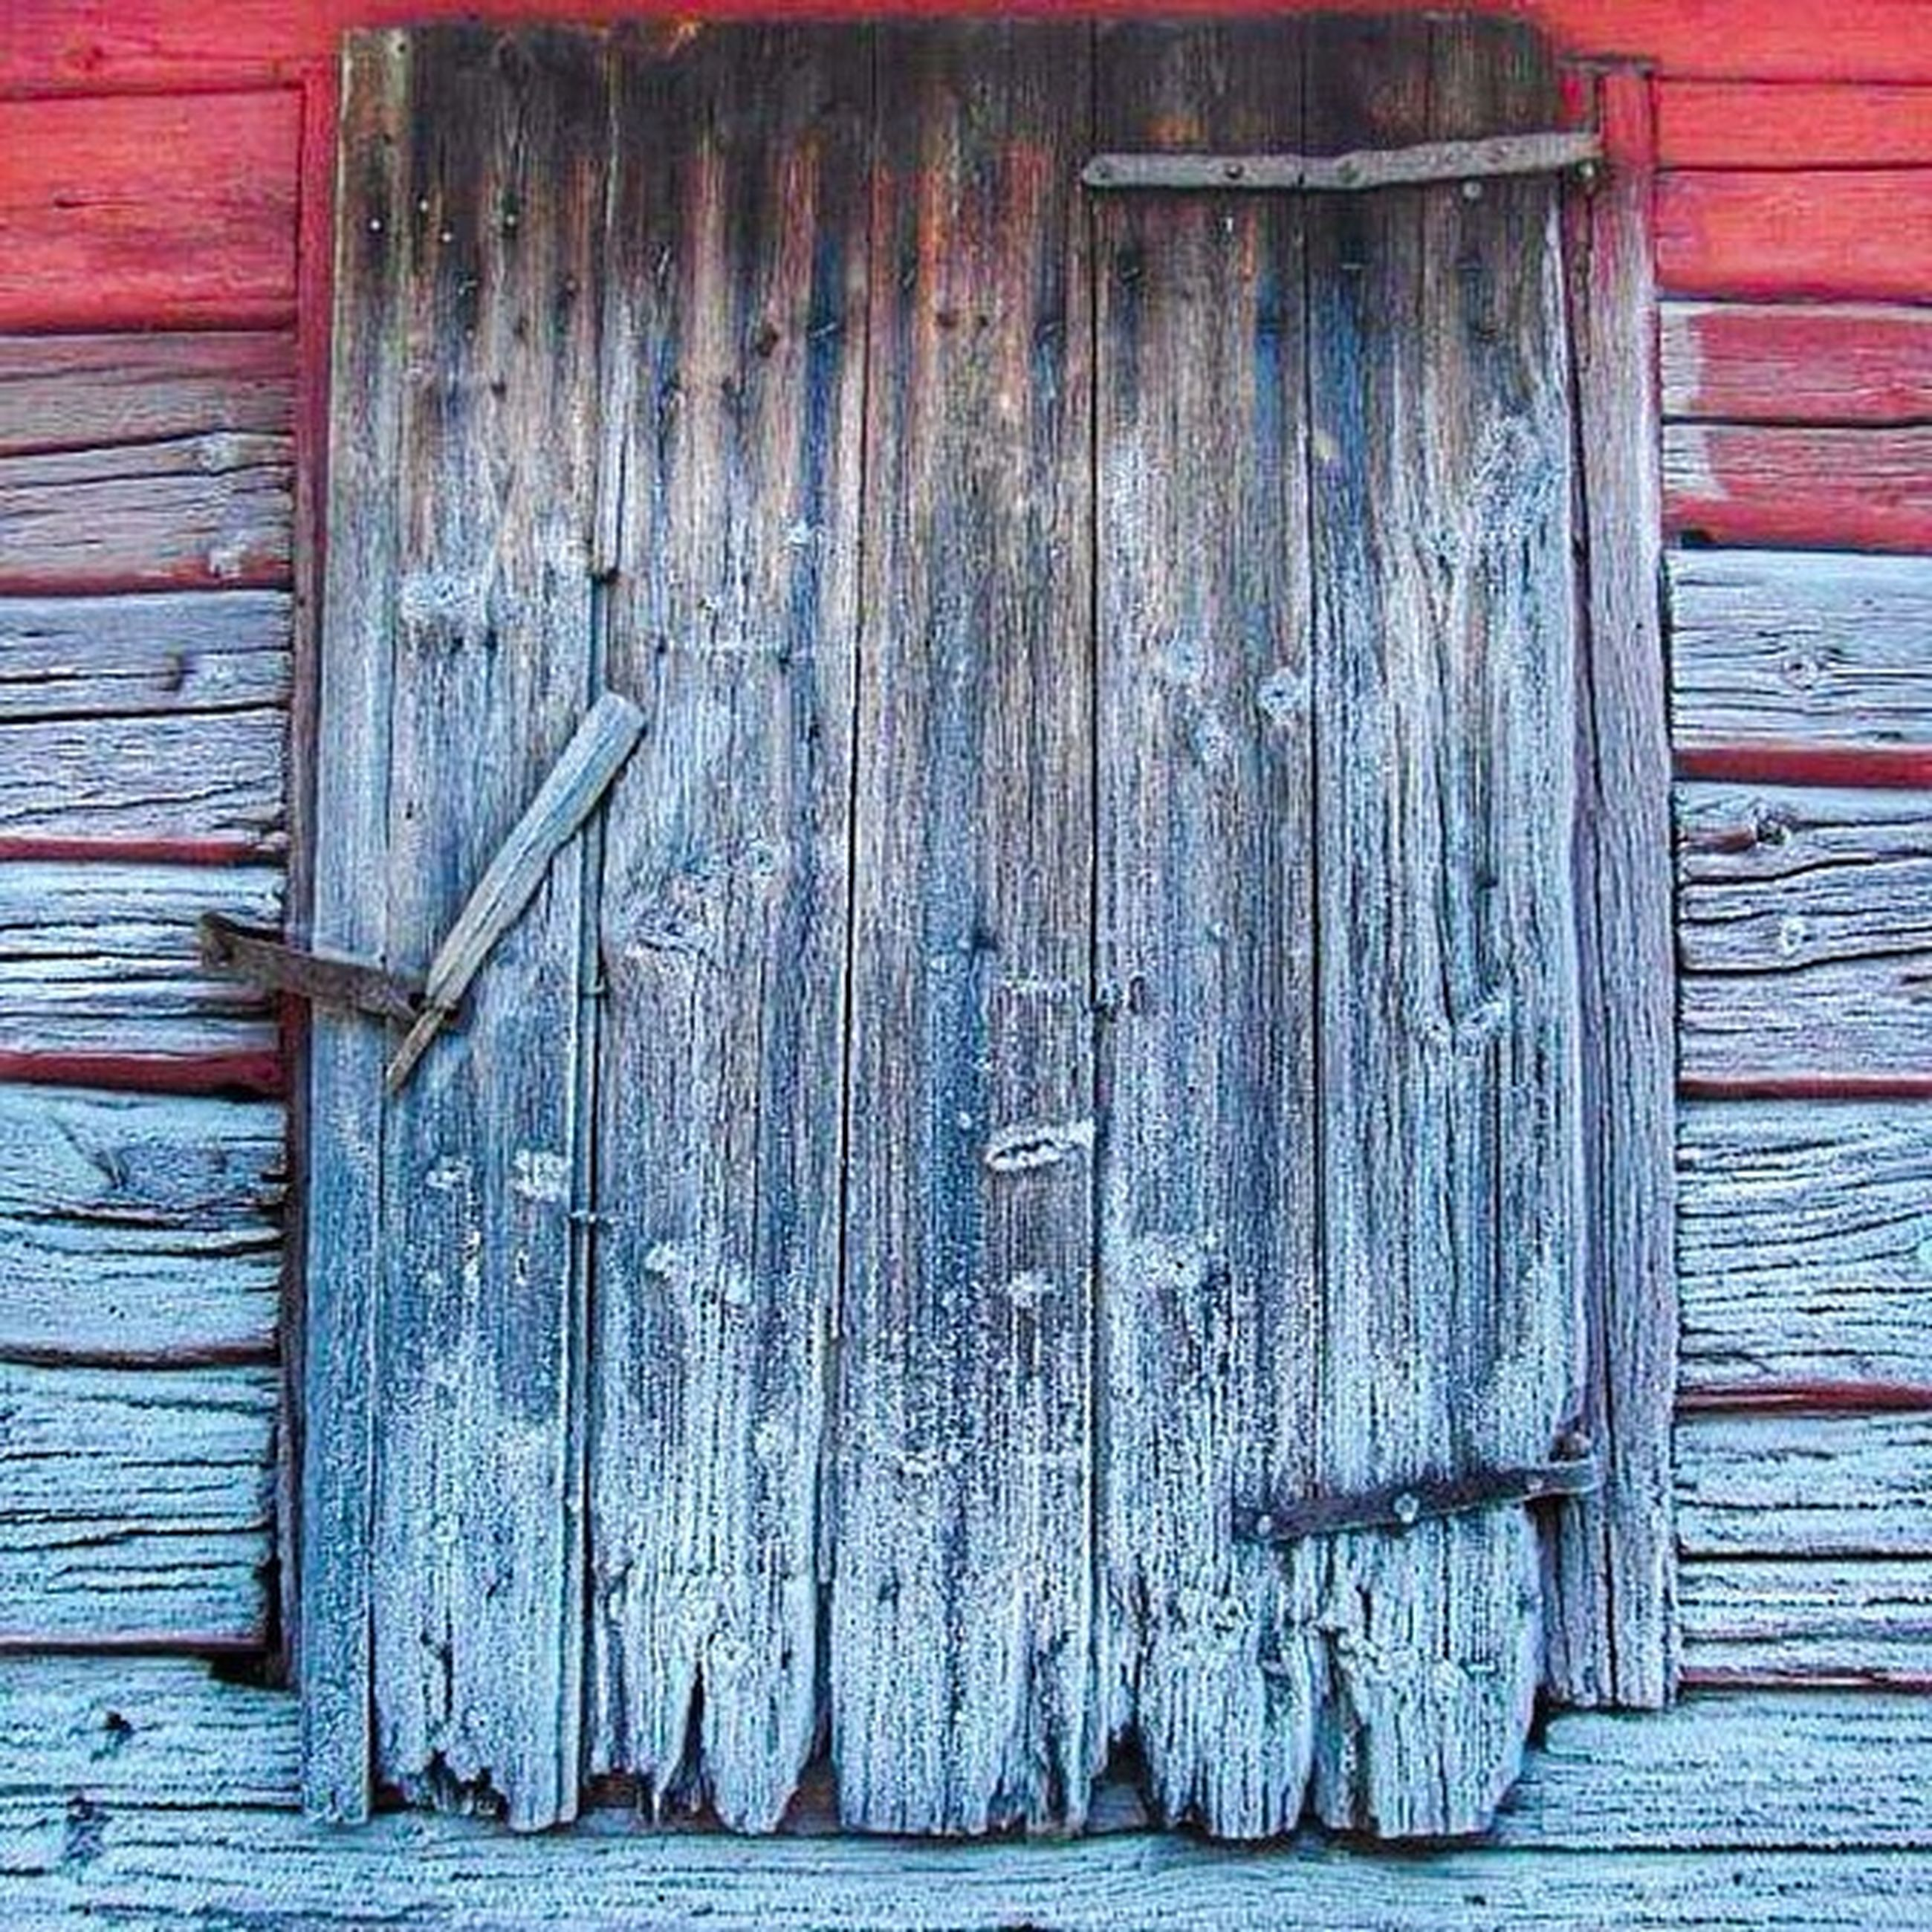 wood - material, wooden, door, wood, closed, plank, weathered, built structure, old, safety, protection, house, full frame, security, close-up, building exterior, textured, architecture, entrance, day